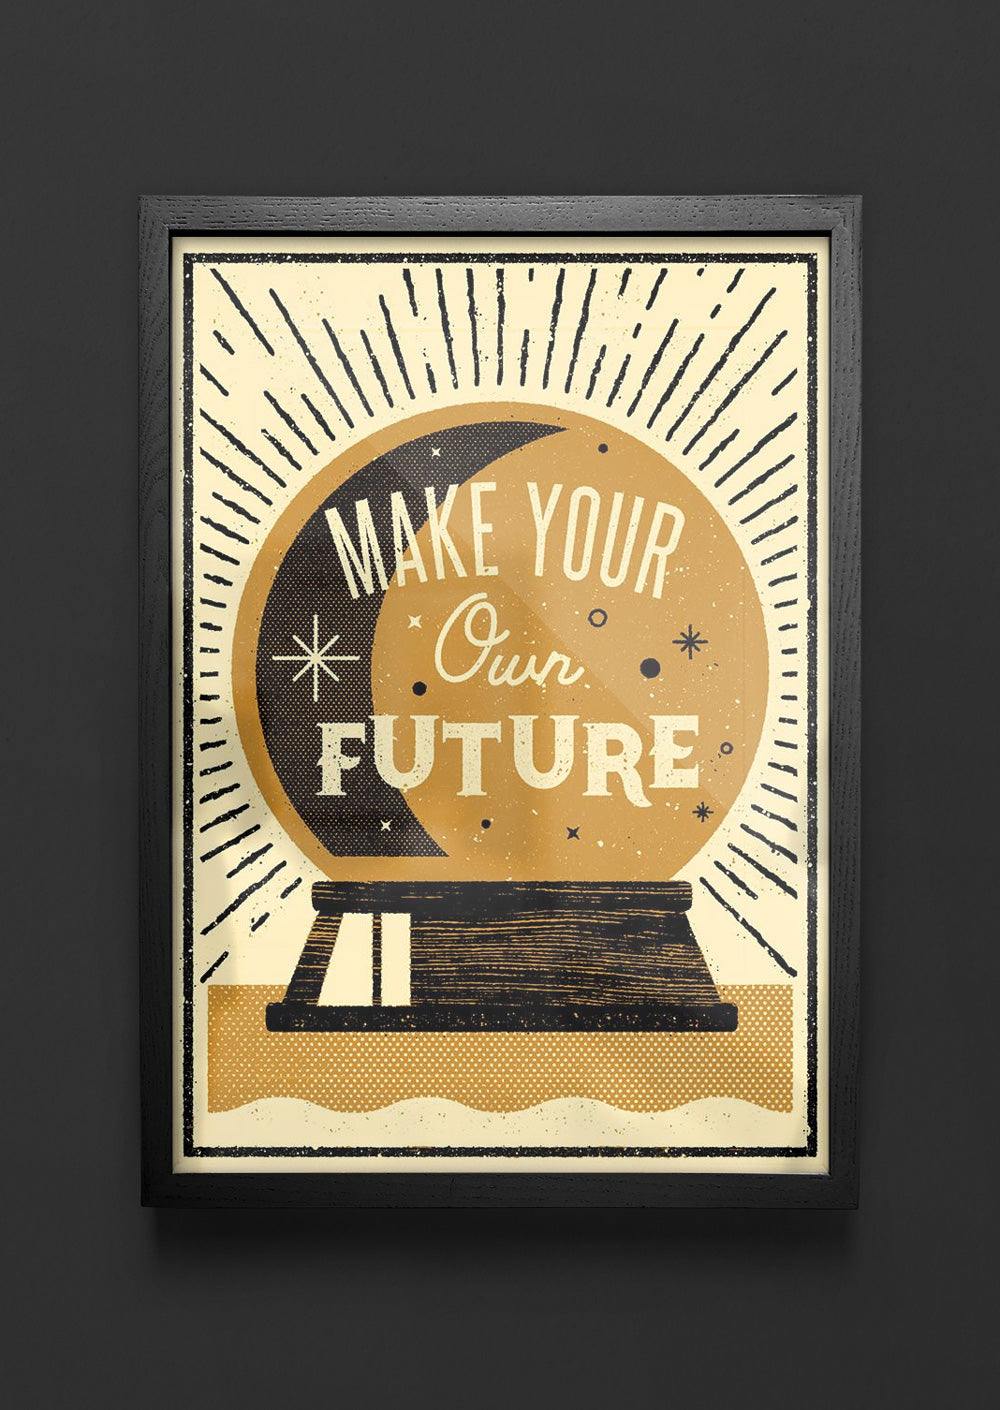 Make Your Own Future - Giclée print